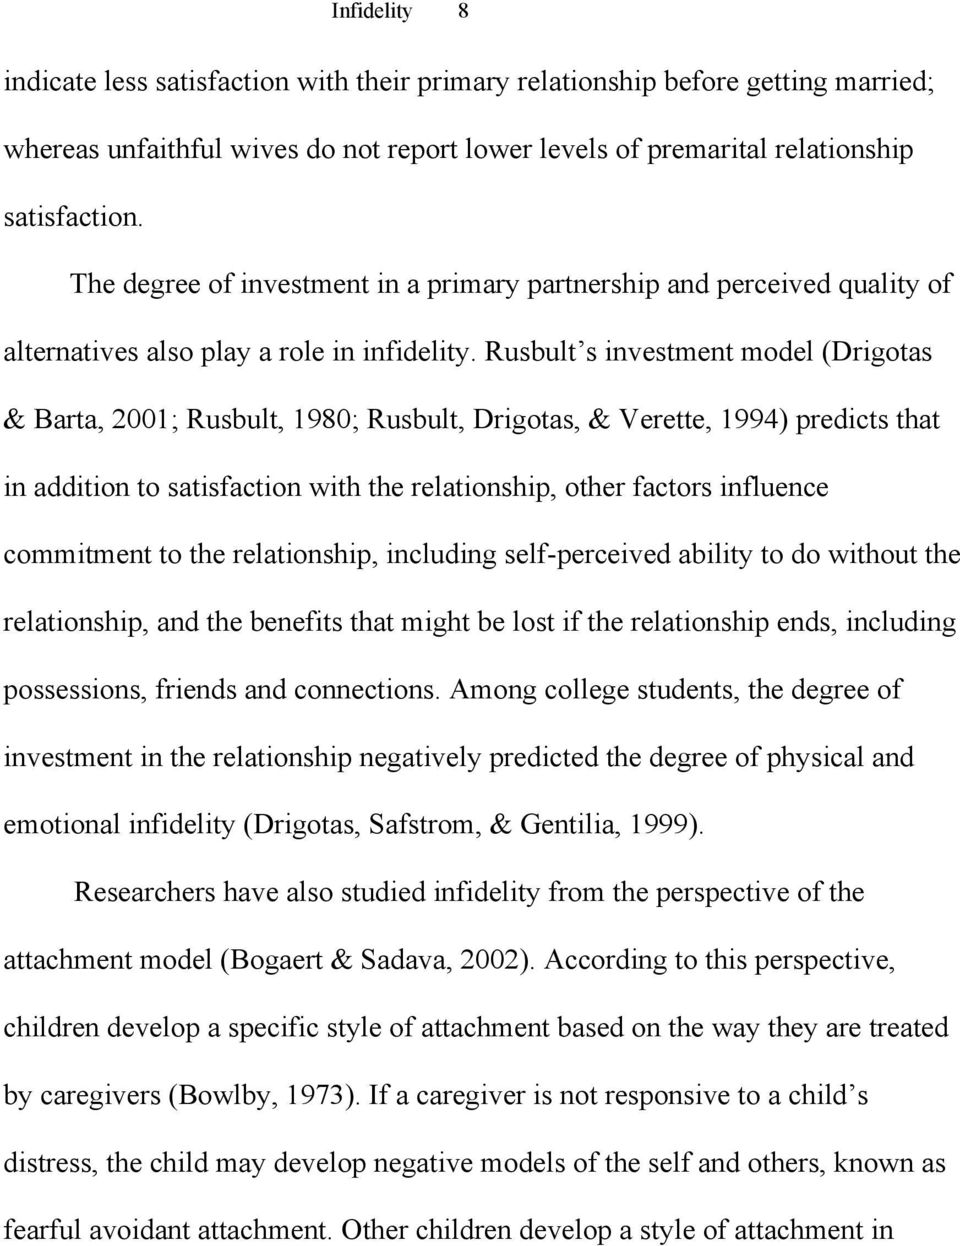 Rusbult s investment model (Drigotas & Barta, 2001; Rusbult, 1980; Rusbult, Drigotas, & Verette, 1994) predicts that in addition to satisfaction with the relationship, other factors influence